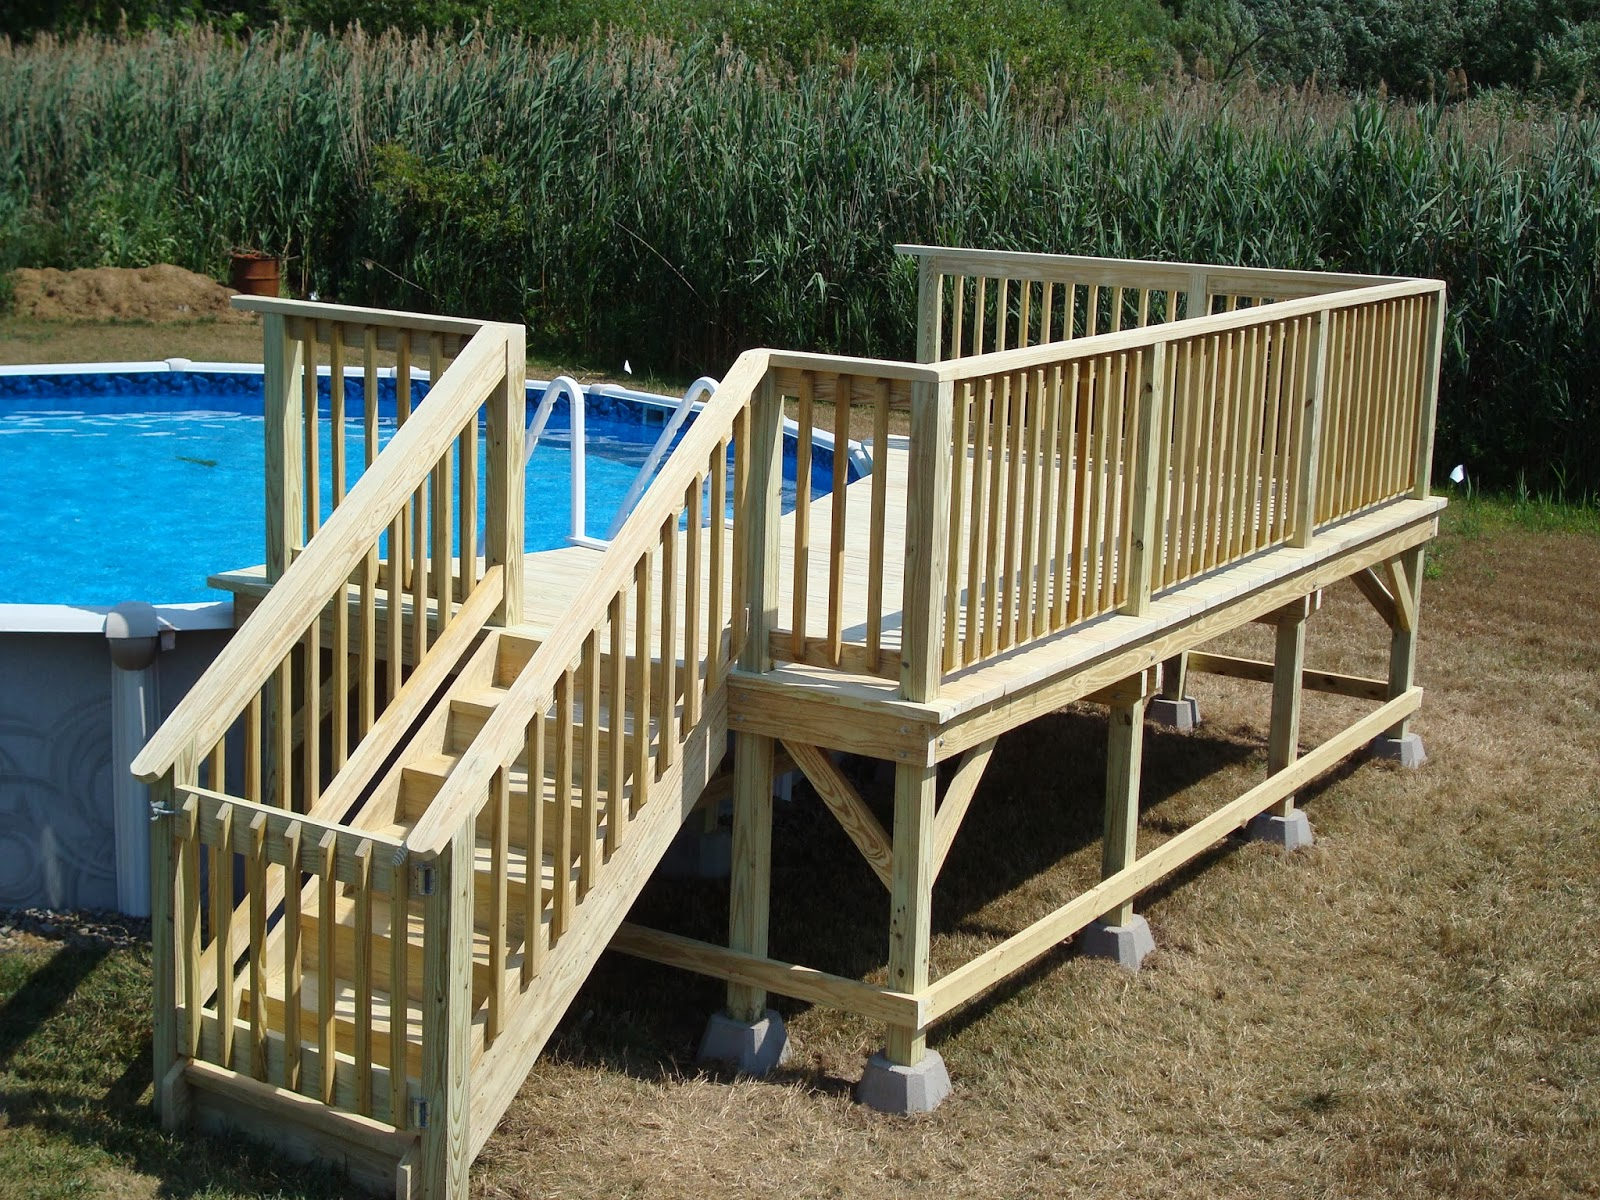 Free Standing Above Ground Swimming Pools: Free Standing Above Ground Pool Decks • Decks Ideas